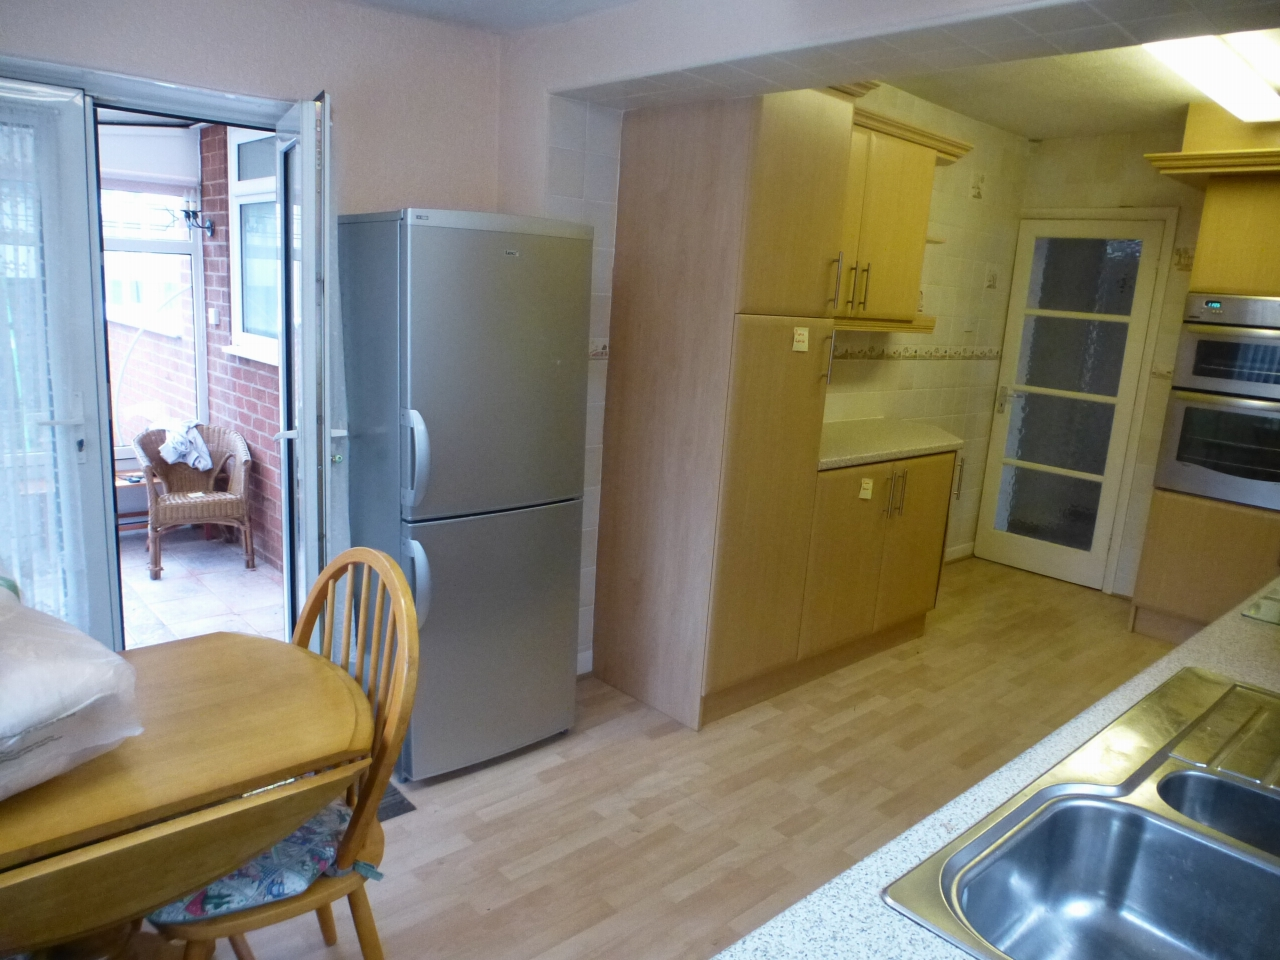 Image 3 of 3 of KITCHEN, on Accommodation Comprising for